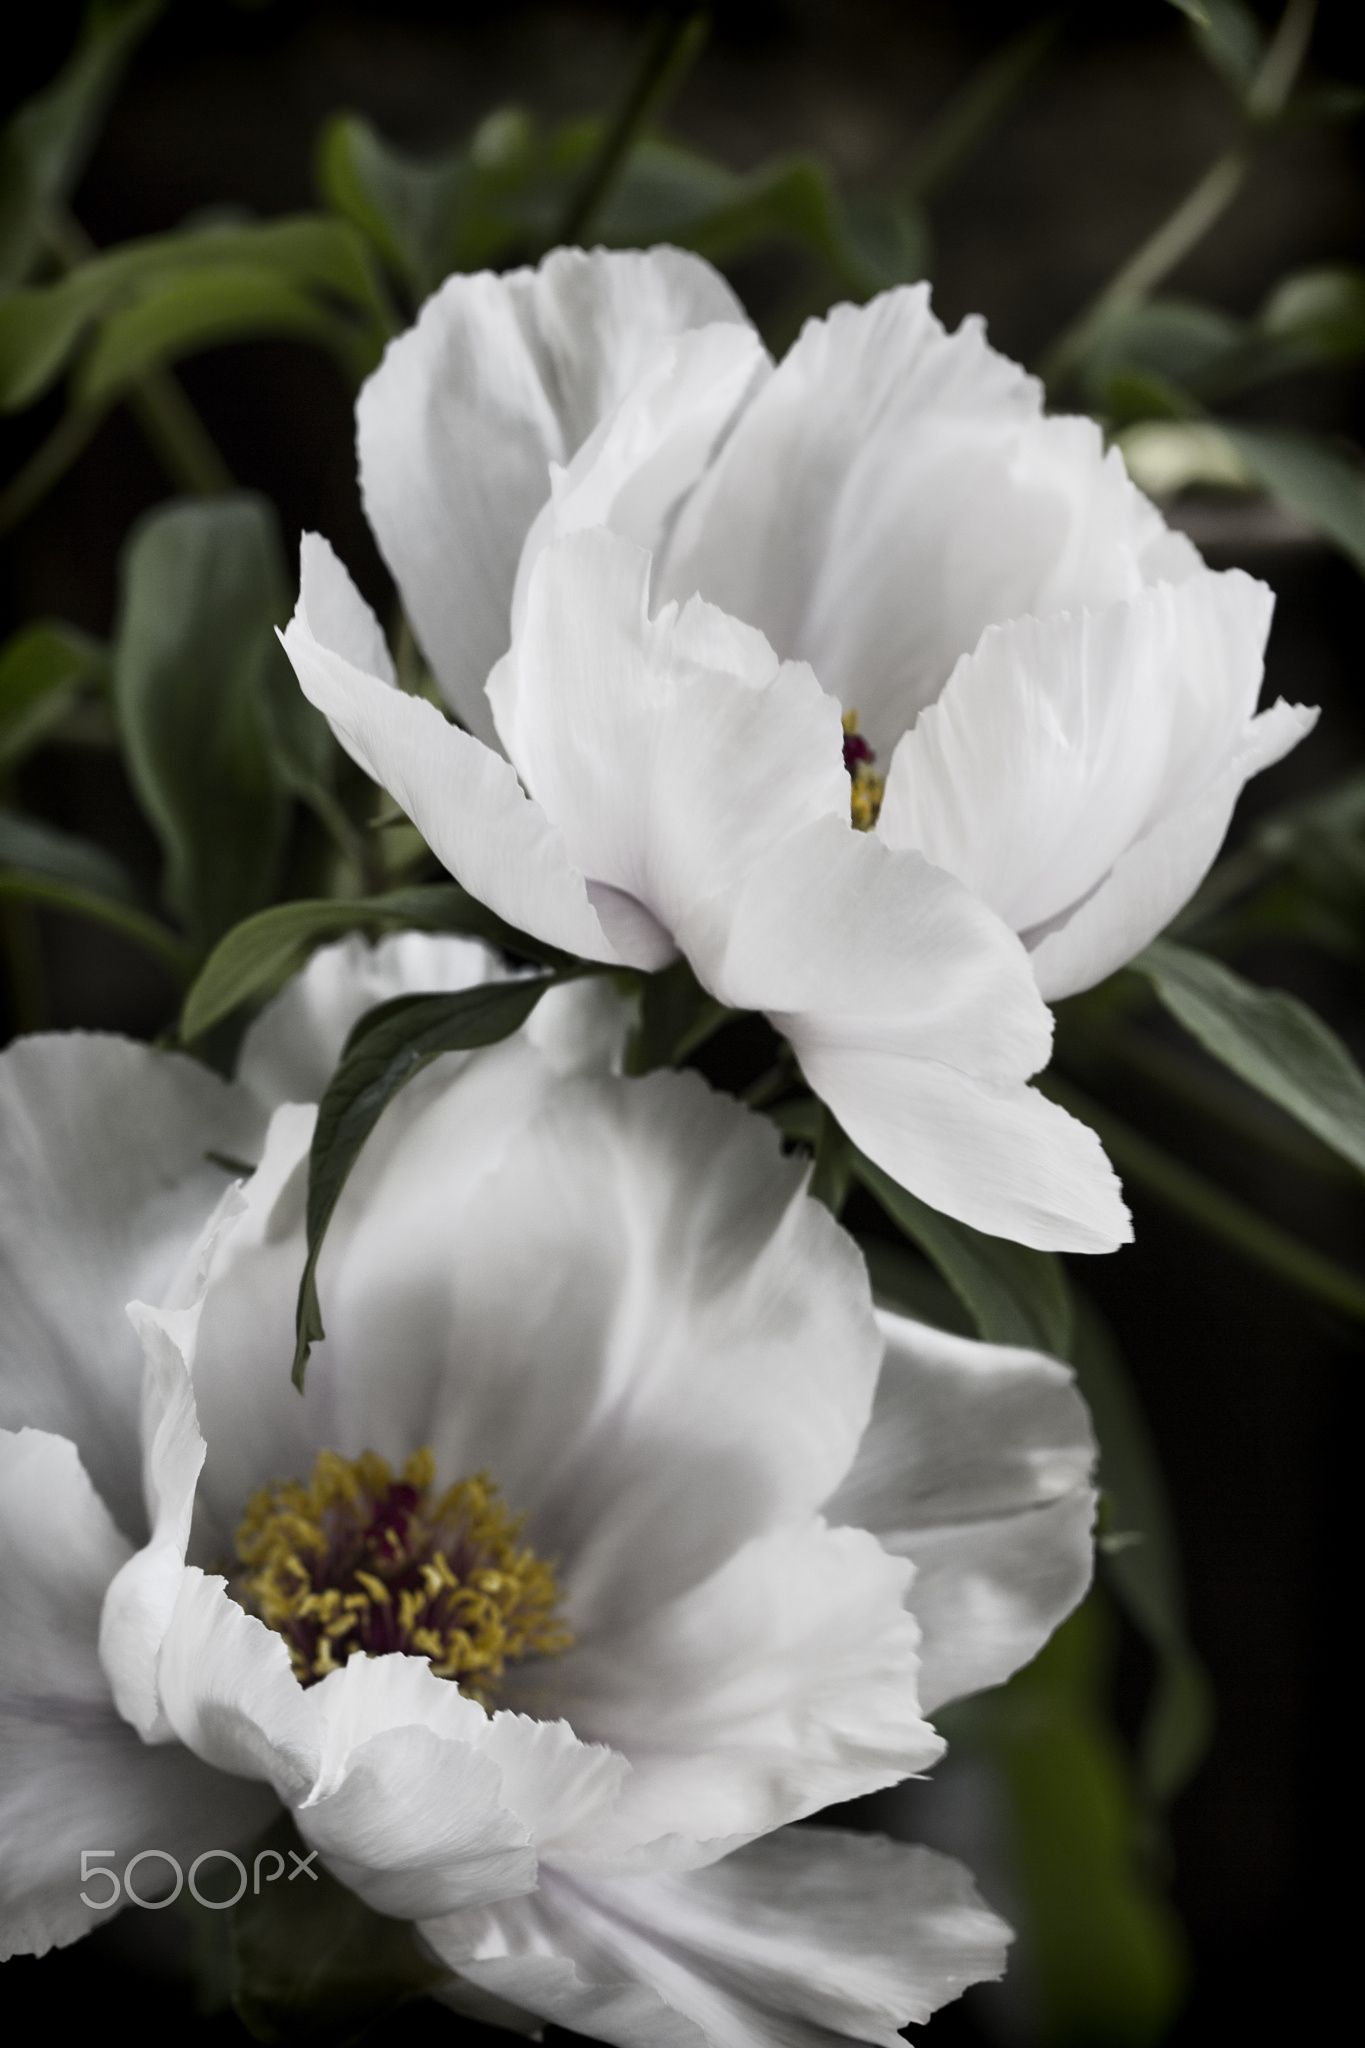 A Pair - These are white-pink tree peony blossoms.